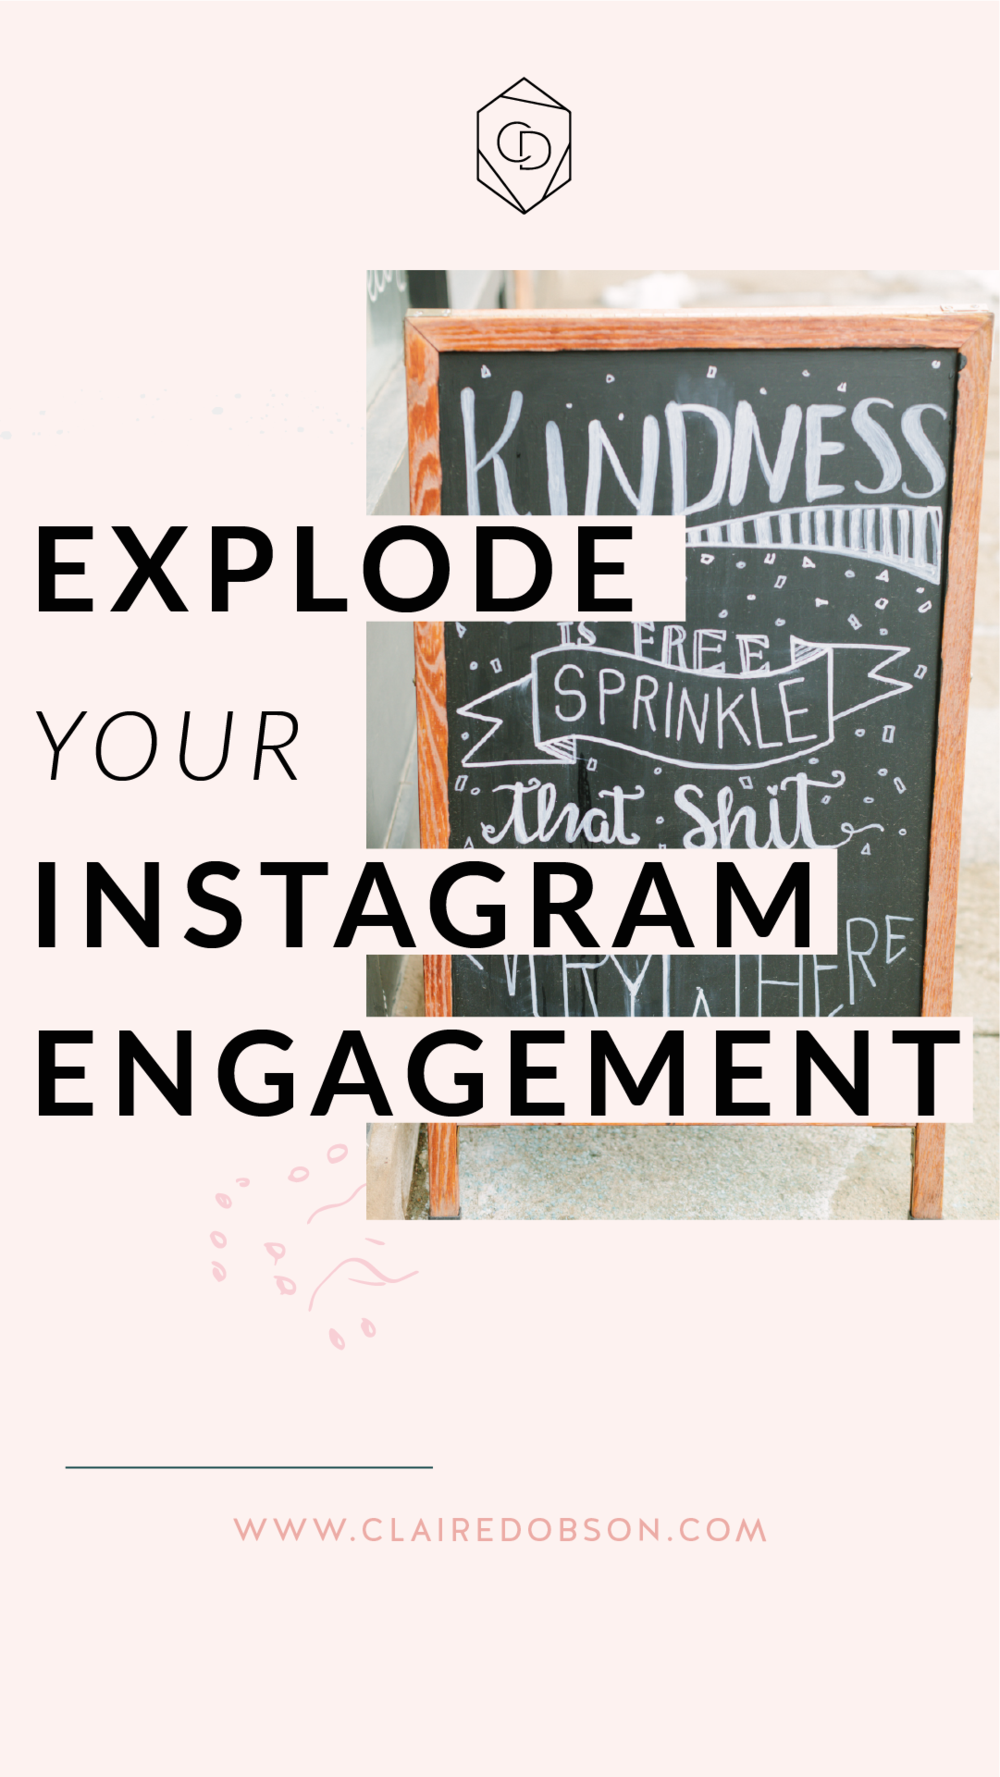 5 Ways To Create More Engaging Content On Instagram | How to get more engagement on Instagram. Learn the tips and tricks to increase your Instagram engagement and organic growth from followers. #instagramtips #socialmediamarketing #contentmarketing